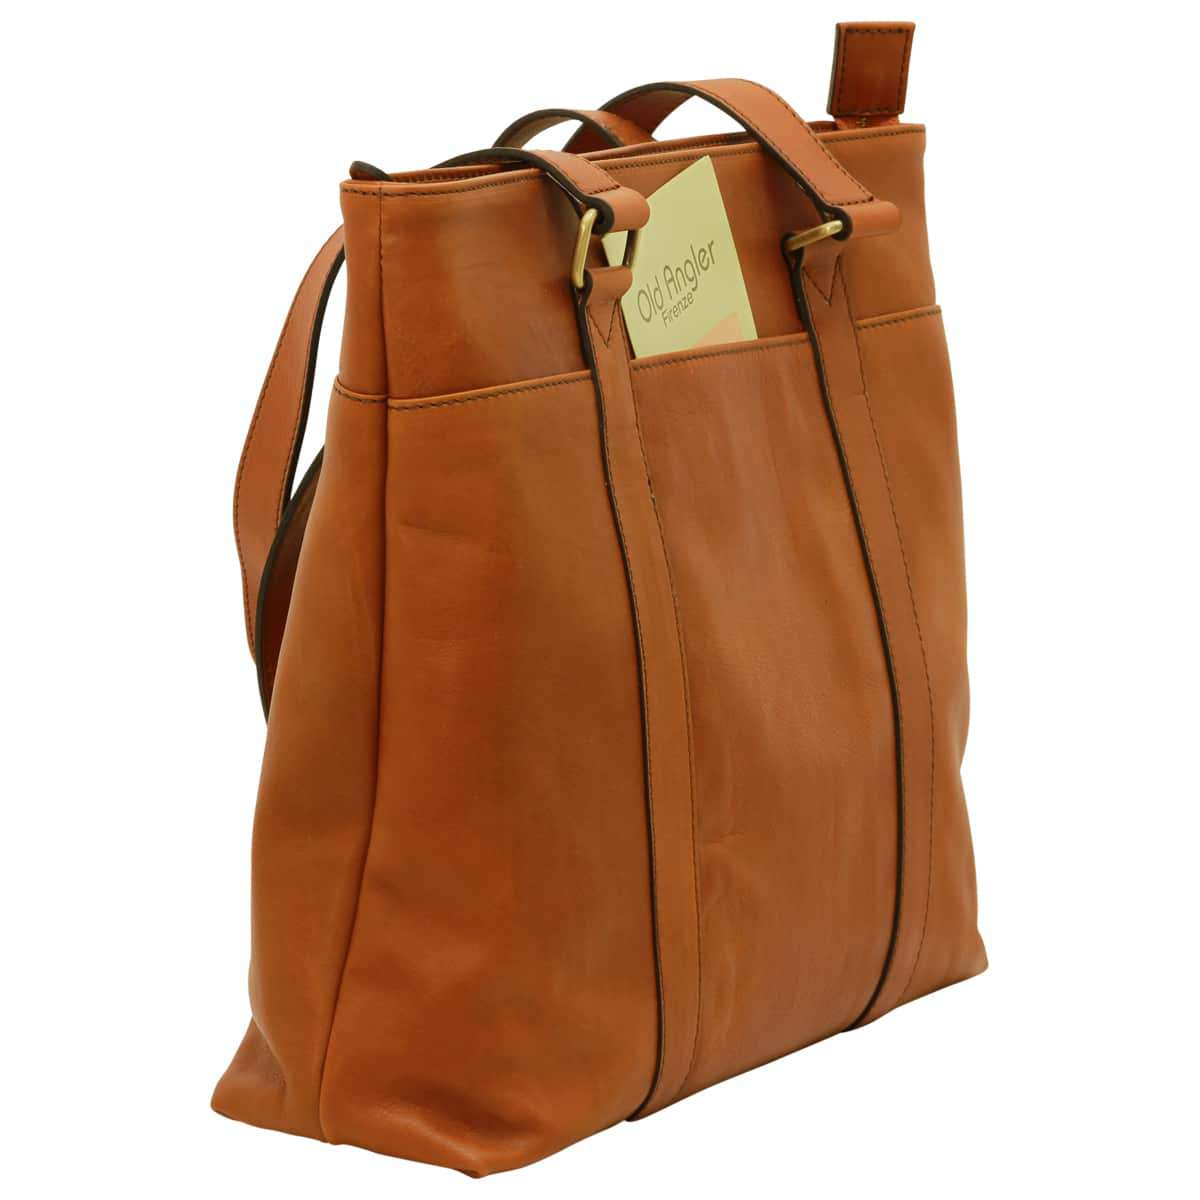 Soft Calfskin Leather Tote Bag - Brown Colonial | 030691CO UK | Old Angler Firenze